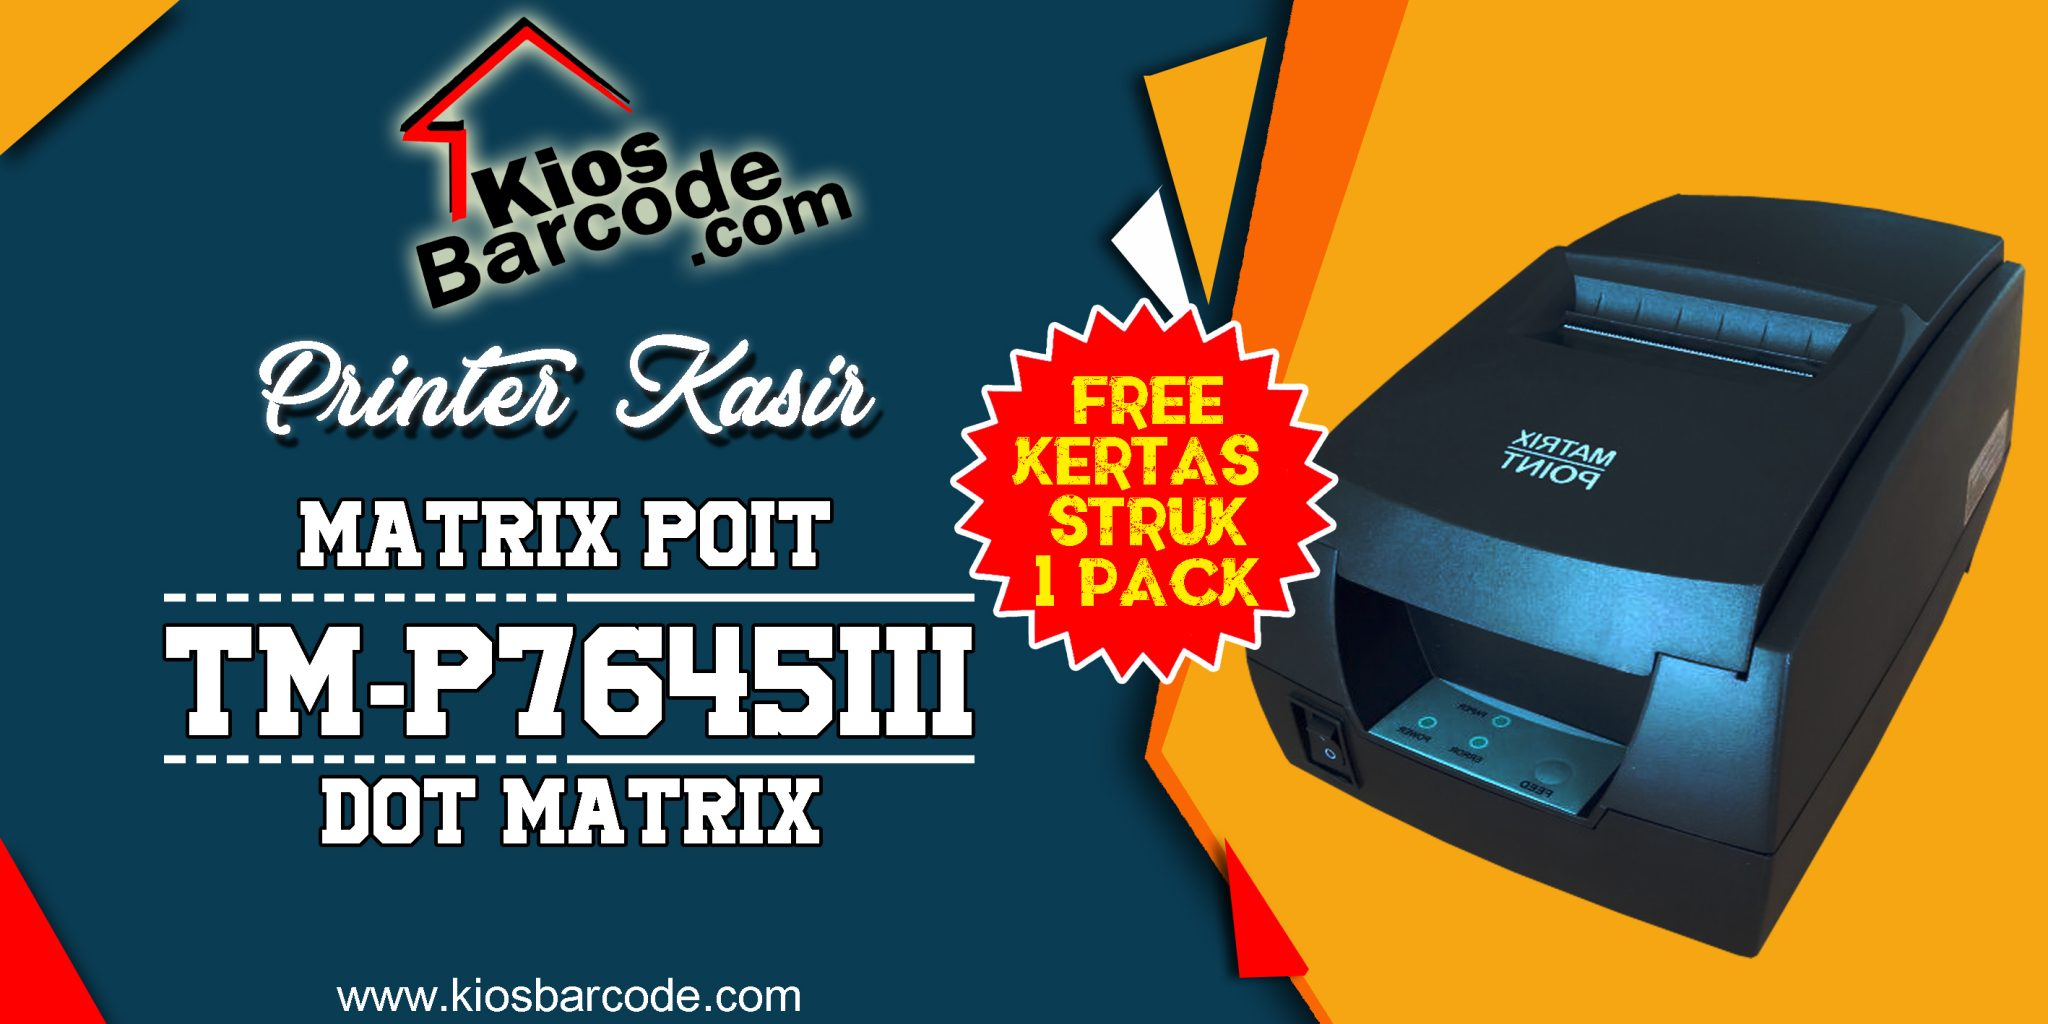 Jual Printer Kasir Plus Gratis Kertas Struk 1 Pack